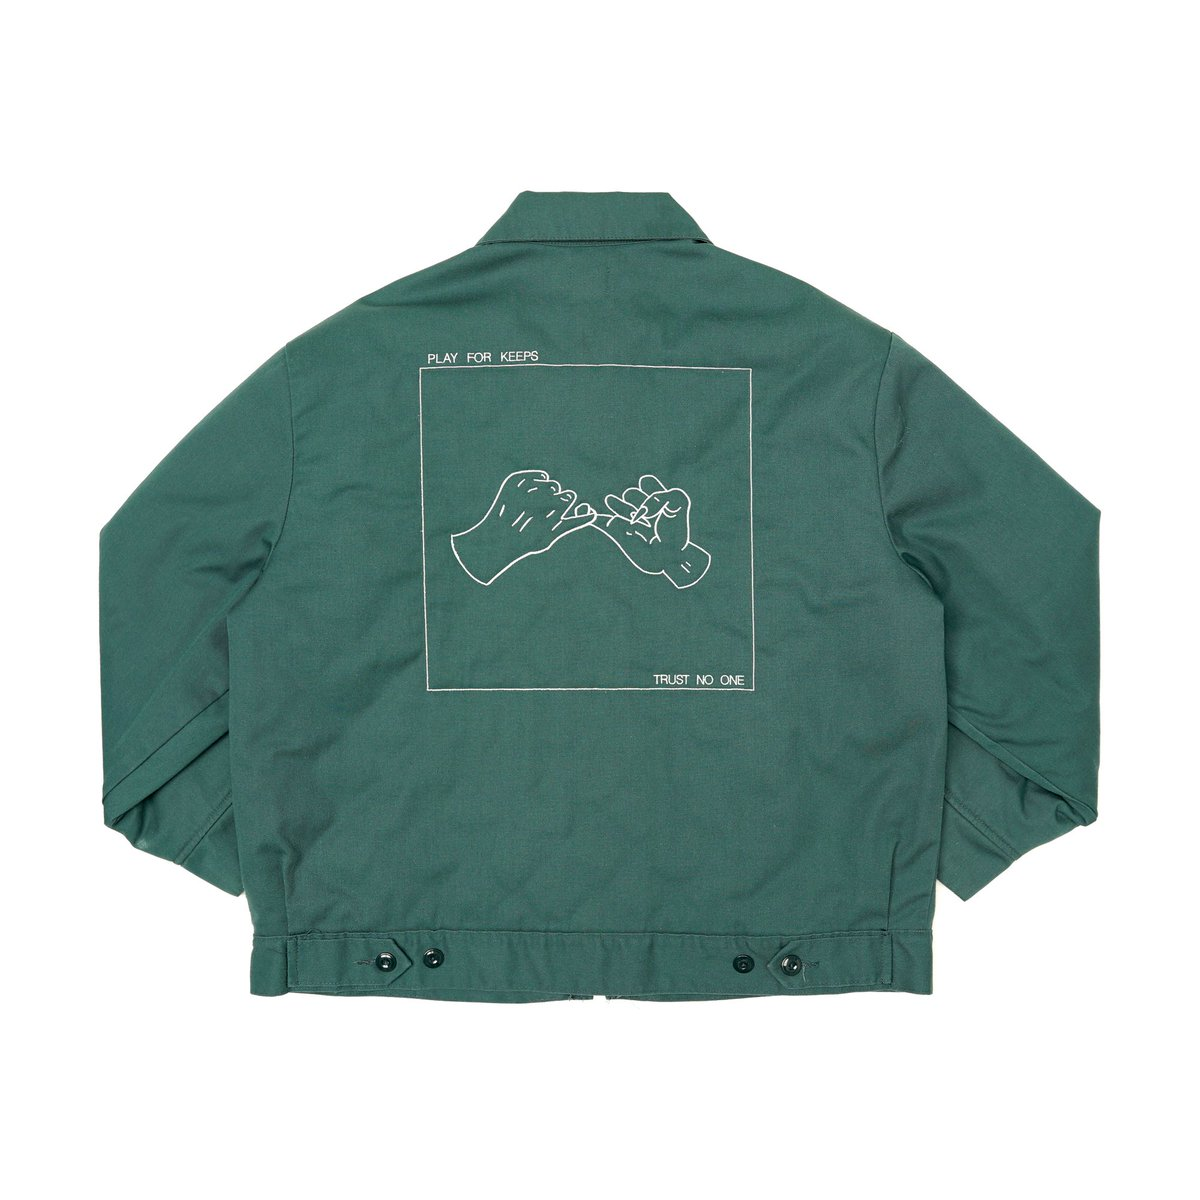 424onfairfax On Twitter No School Trust Jacket Httpstco